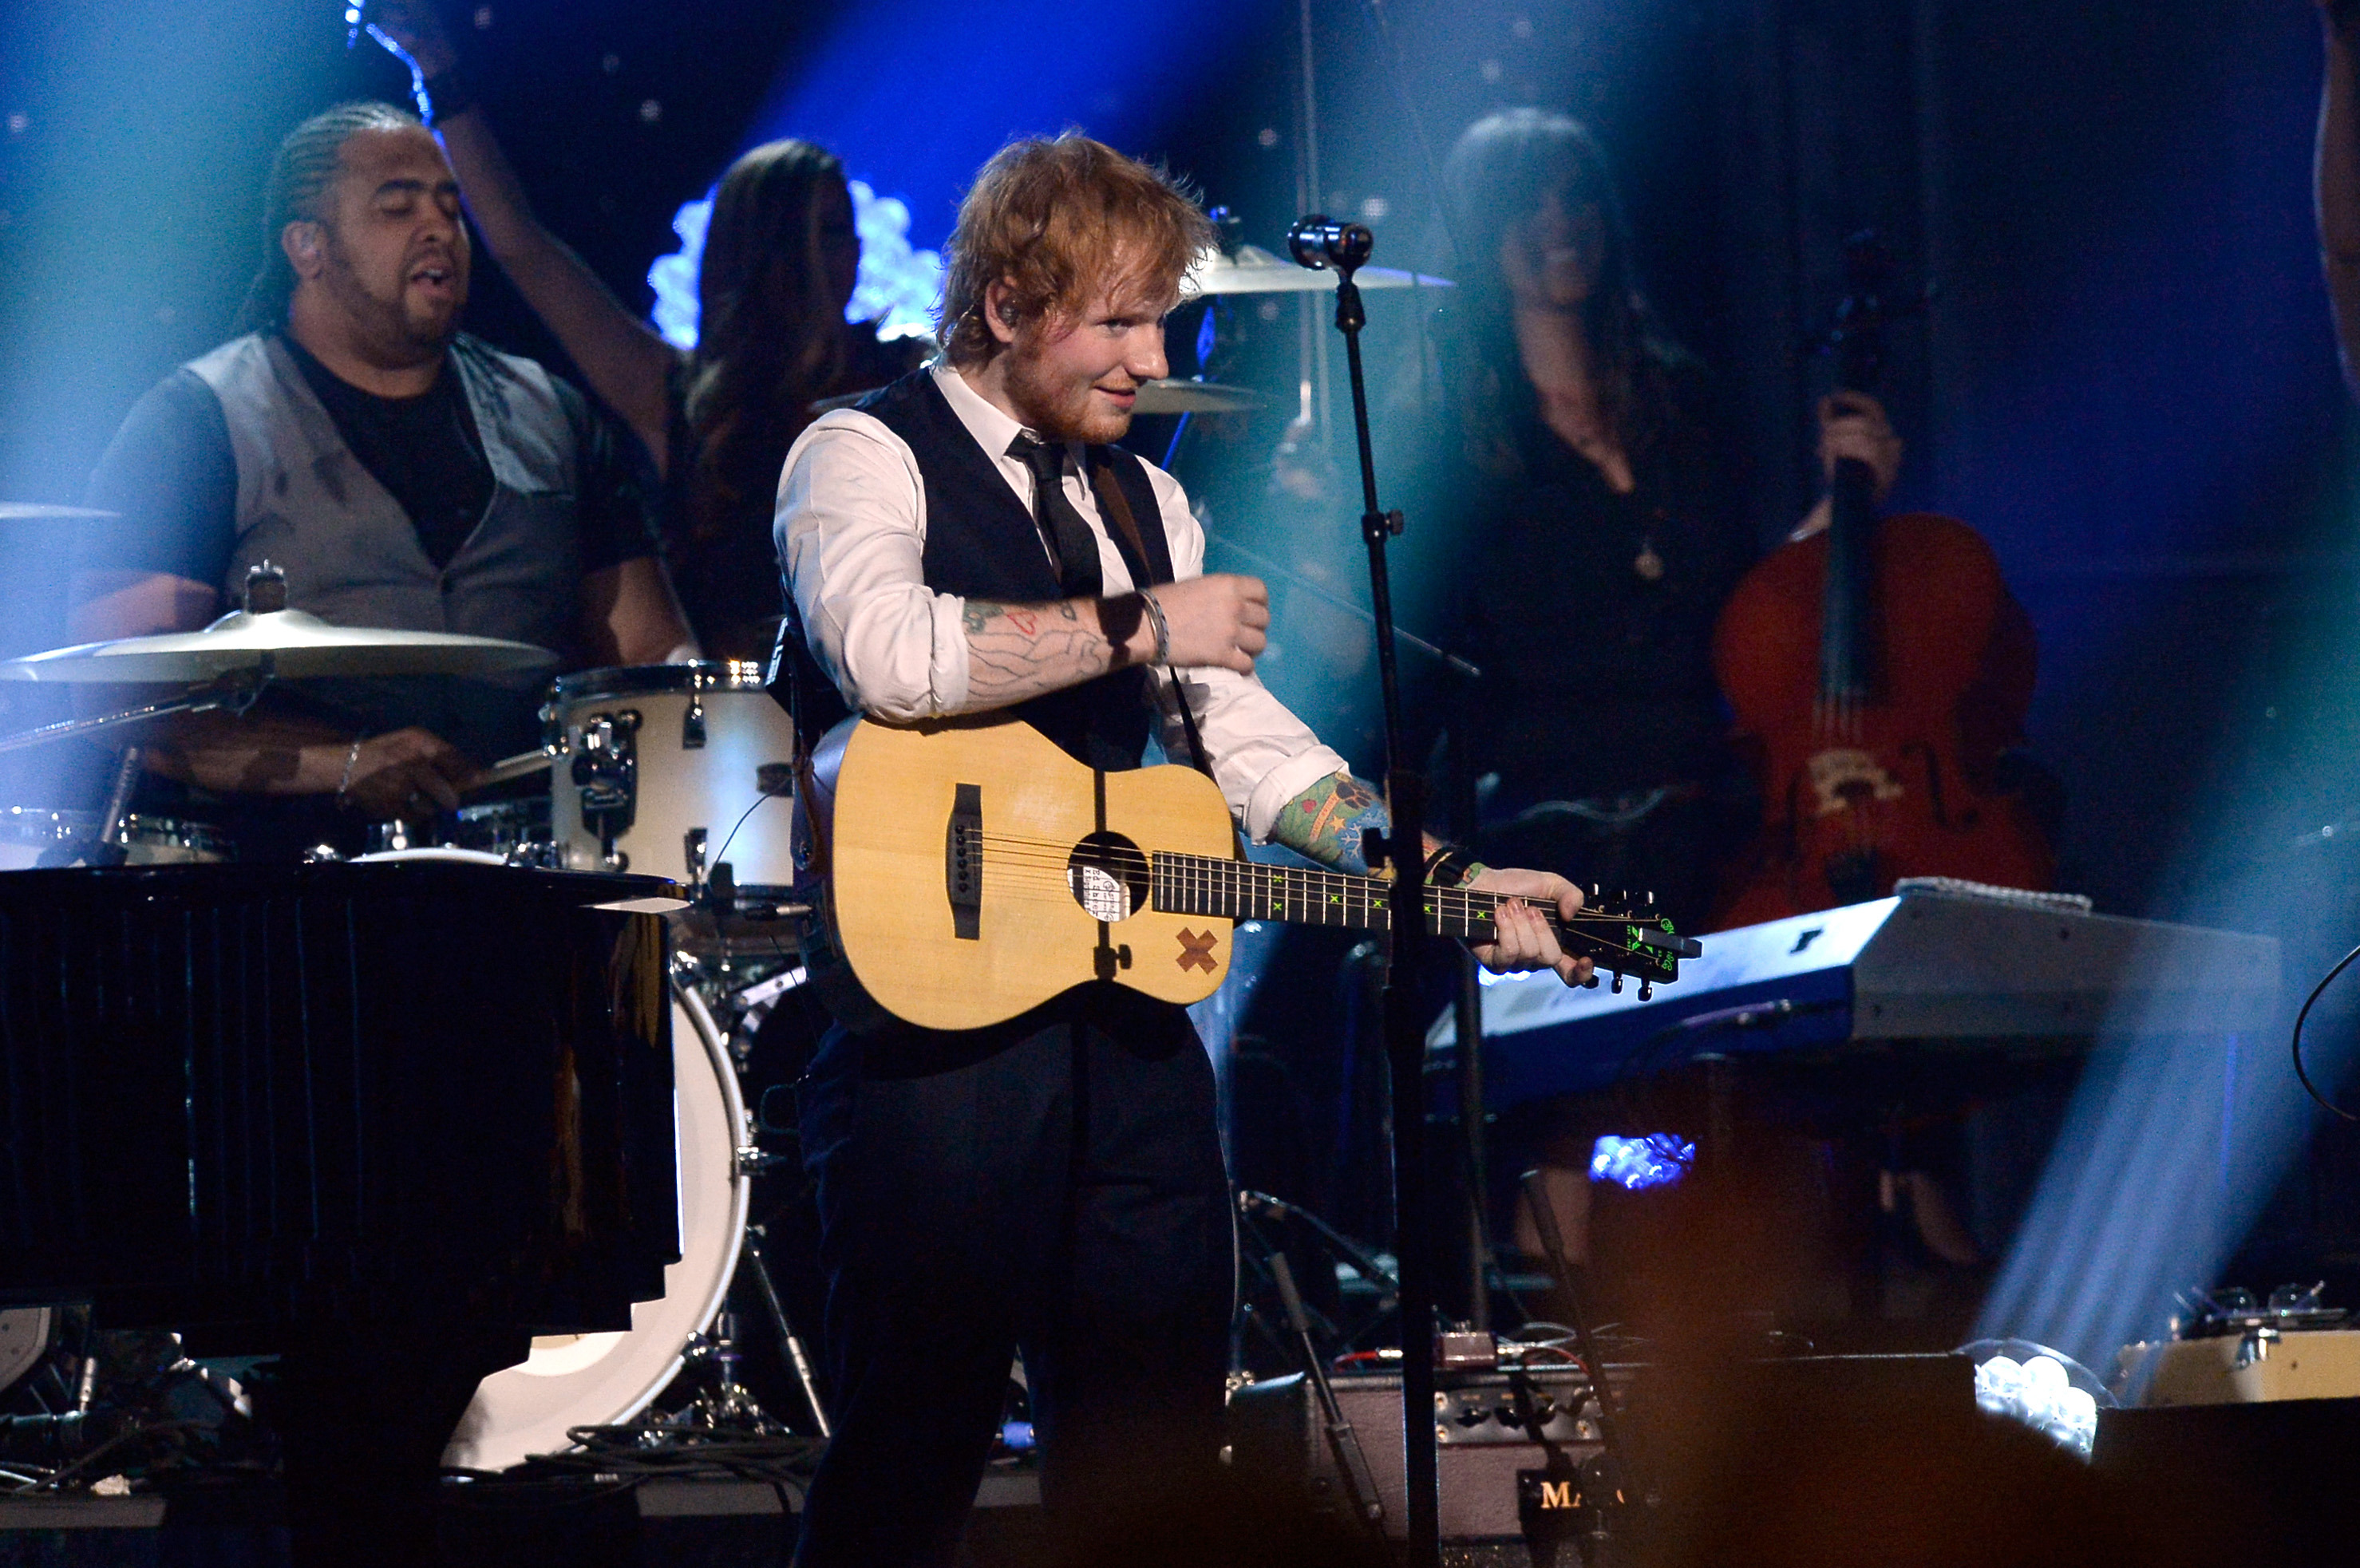 LOS ANGELES, CA - FEBRUARY 08:   Singer Ed Sheeran performs 'Evil Woman/Mr. Blue Sky' onstage during The 57th Annual GRAMMY Awards at the at the STAPLES Center on February 8, 2015 in Los Angeles, California.  (Photo by Kevork Djansezian/Getty Images)